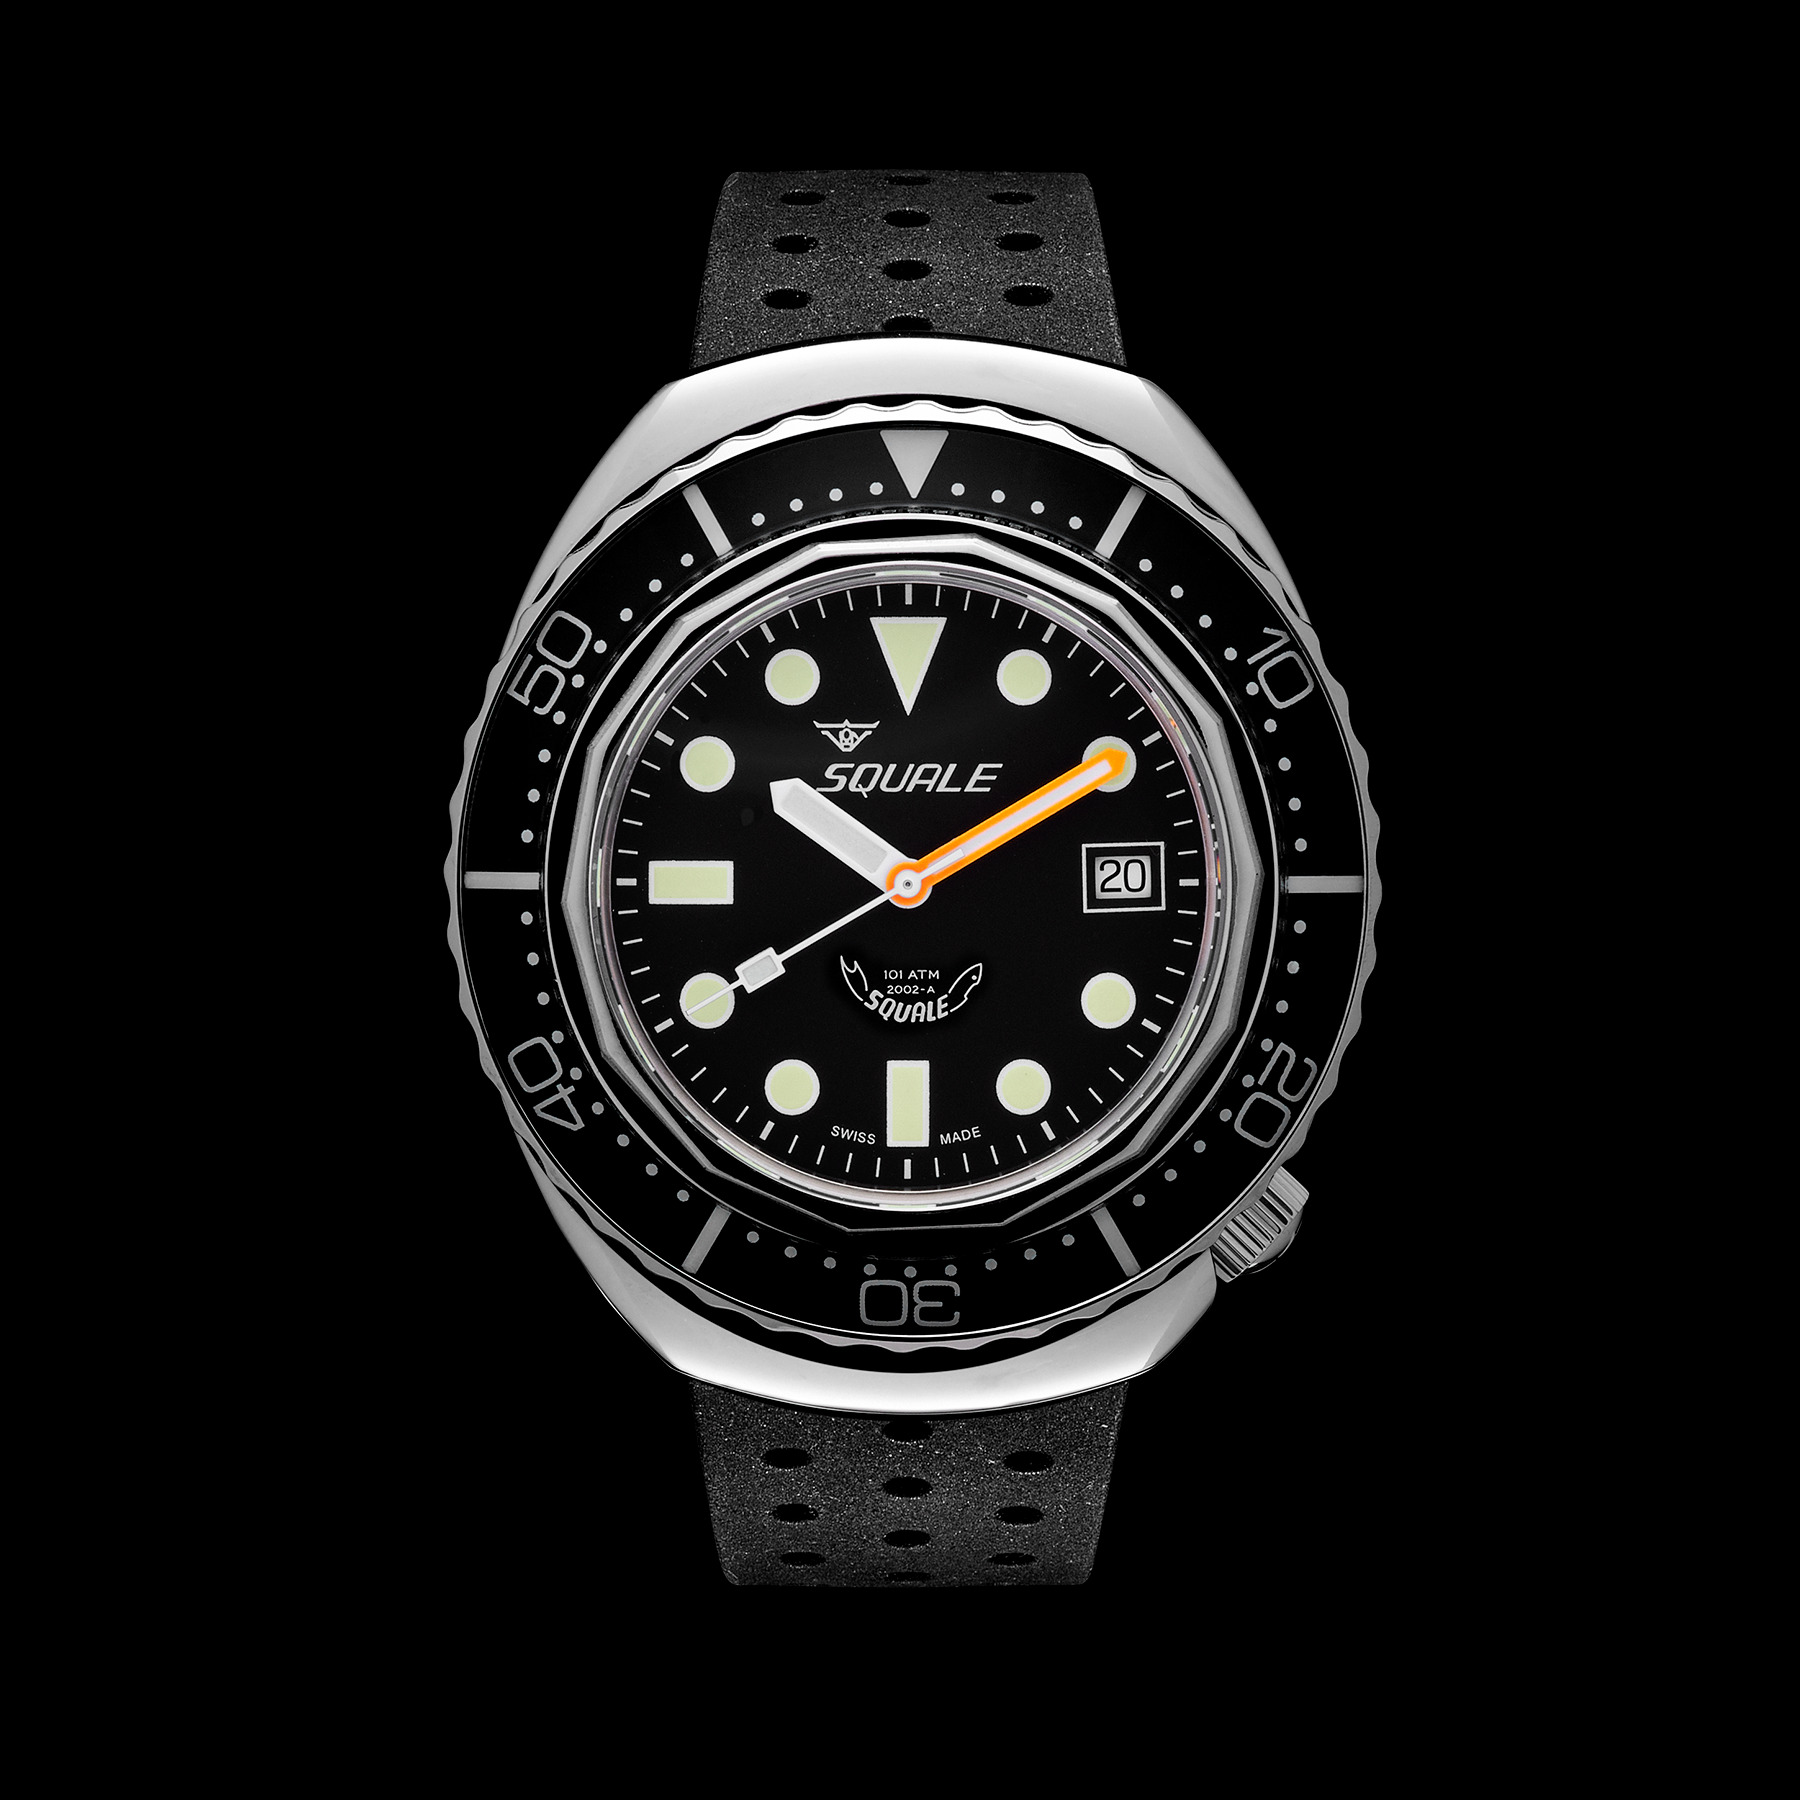 Squale 2002 Blask Dots Blasted 101 atmos Dive Watch